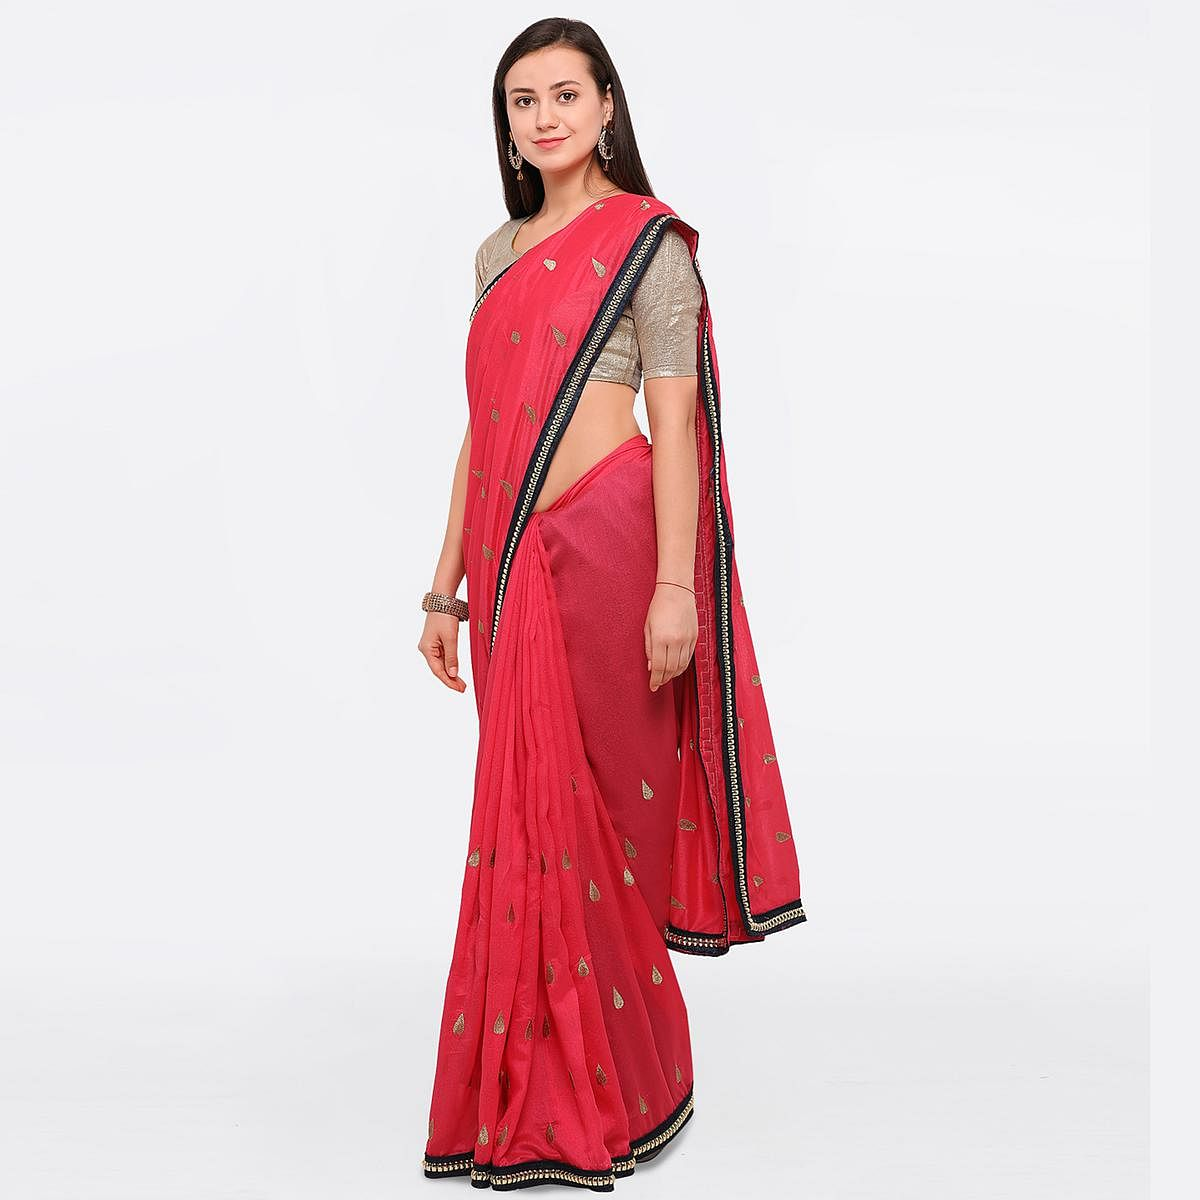 Radiant Pink Colored Party Wear Embroidered Raw Silk Saree